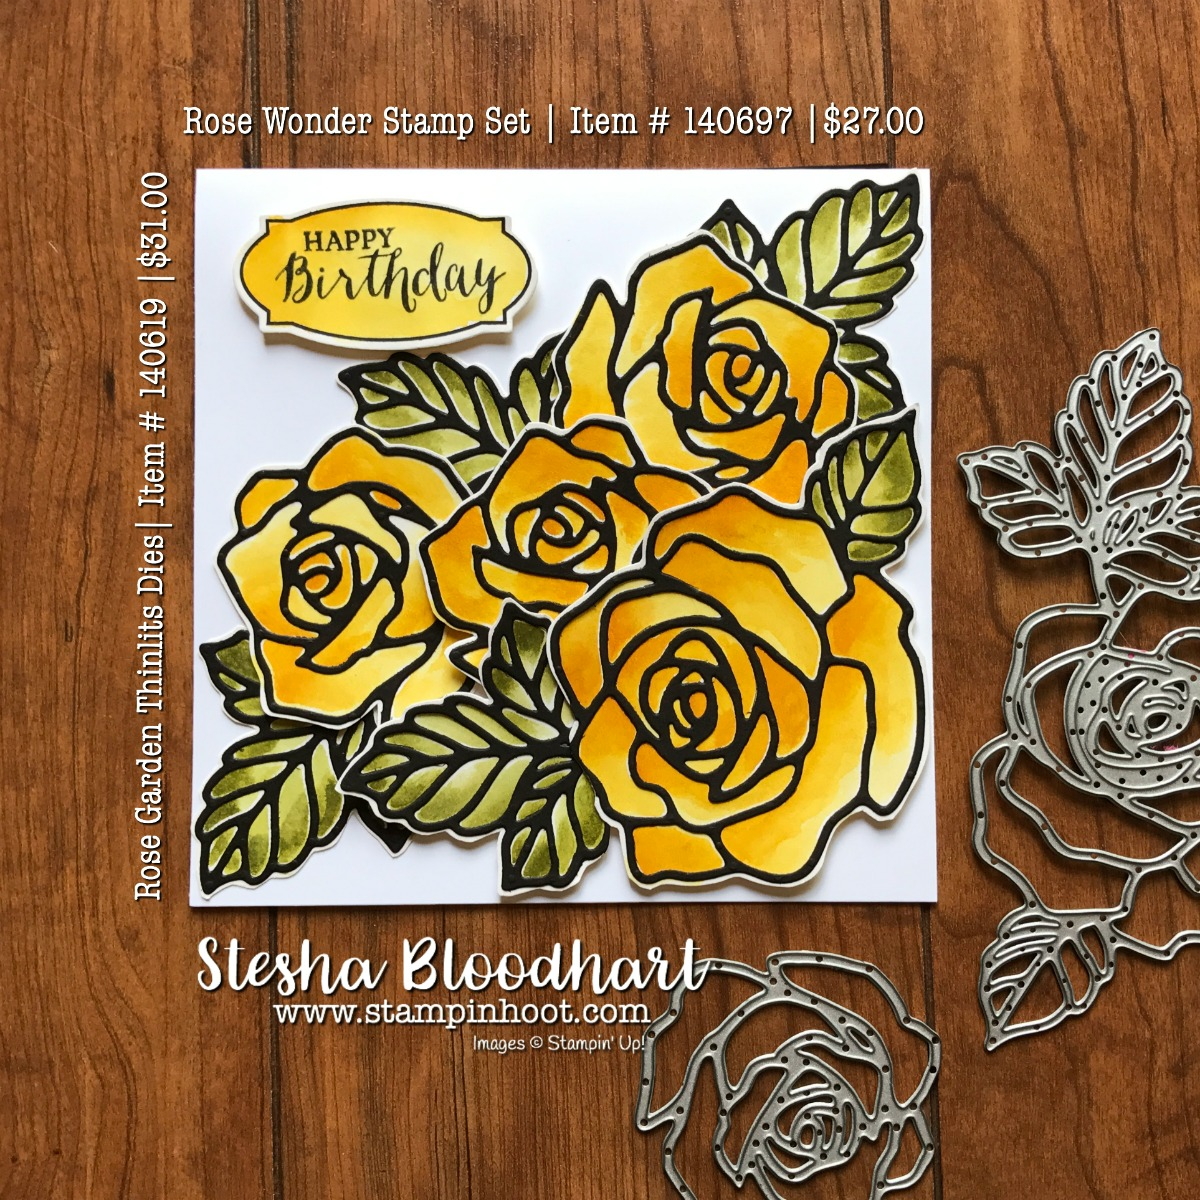 Rose Wonder Photopolymer Stamp Set and Coordinating Rose Garden Thinlits Dies by Stampin' Up! are beautifully colored with Shimmery White Cardstock, Old Olive and Crushed Curry Ink and an Aqua Painter! See detail at Stampin' Hoot! Stesha Bloodhart, Independent Stampin' Up! Demonstrator who loves to fussy cut and watercolor! #rosewonder #watercolor #diecut #crushedcurry #stampinup #stampinupcards #stampinupdemonstrator #cards #papercrafts #rubberstamps #handmadecards #cardstock #handstamped #diy #cardmaking #imadethis #crafty #directsales #stesha #watercolor #coloring #stampsinksdies #stampinhoot #steshabloodhart #bigshot #framelits #thinlits @stampinup